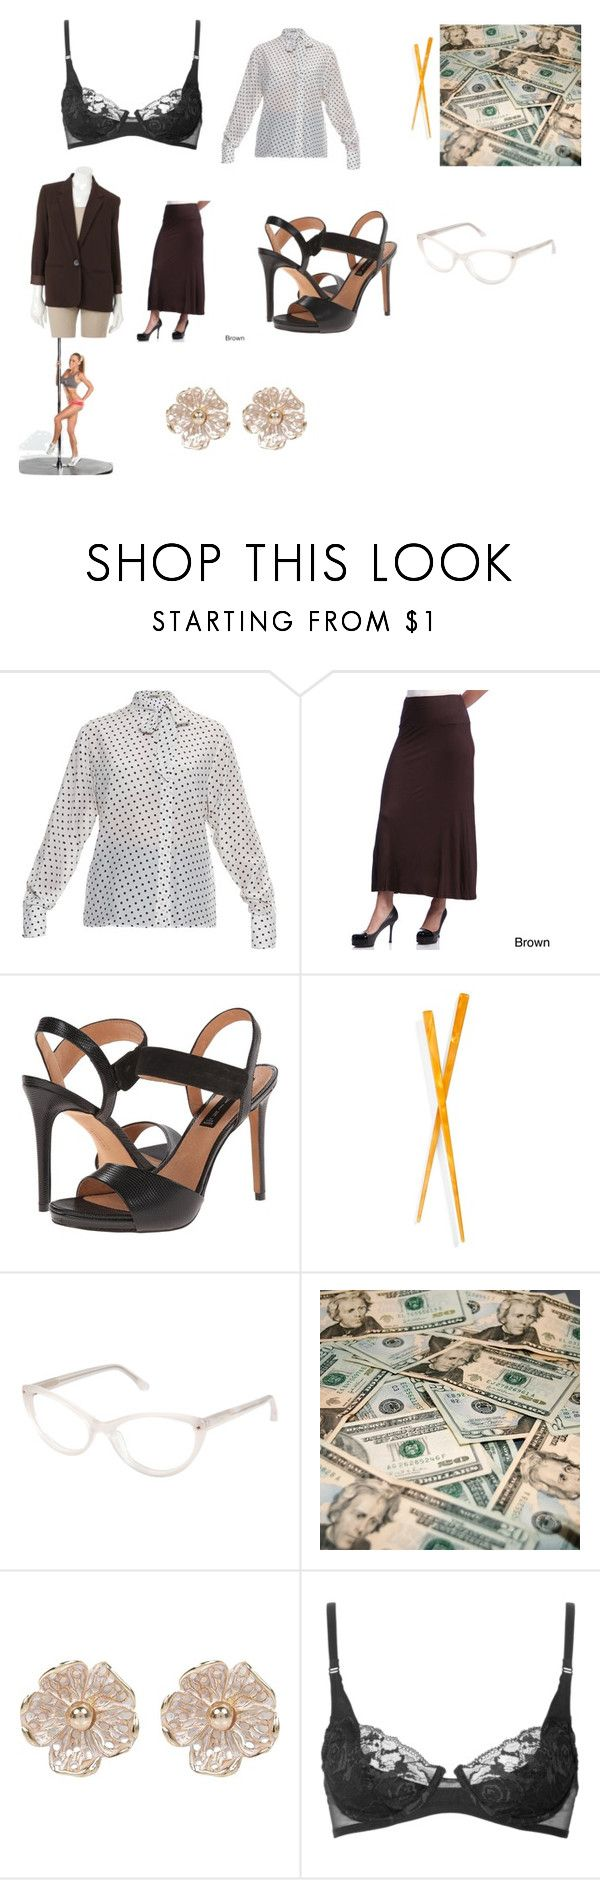 """""""Laura Prepon's career woman stripper outfit in a fantasy sequence from Season 3 of """"That '70s Show"""" (""""Baby Fever"""")"""" by terrence-michael-clay on Polyvore featuring Bottega Veneta, 24/7 Comfort Apparel, Steven, France Luxe, Cynthia Rowley, River Island, La Perla and Sag Harbor"""